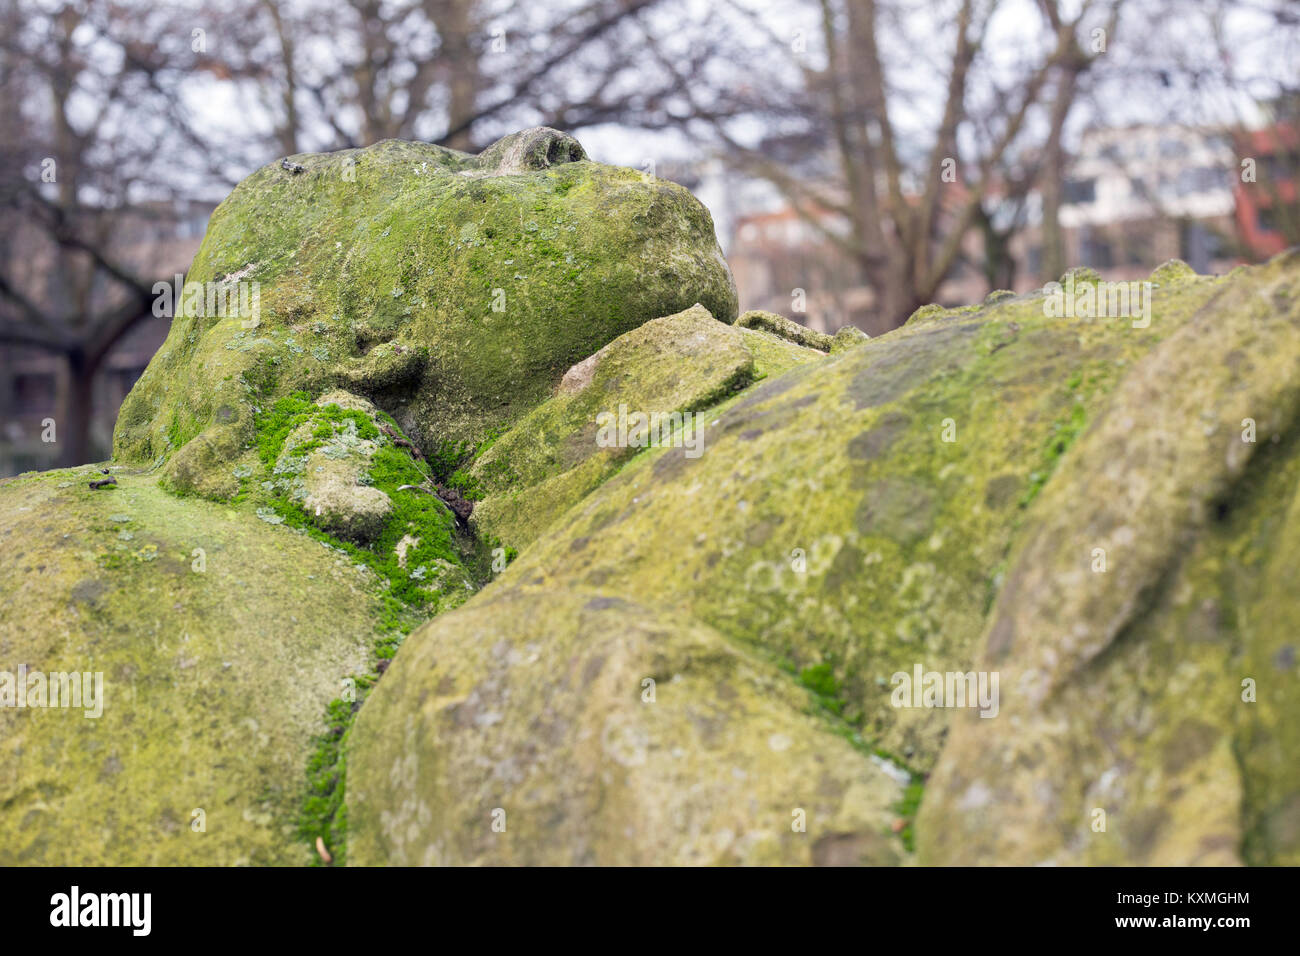 December 2017. London, England, Close up of the grave of John BUNYAN at Bunn Hill Cemetery. - Stock Image